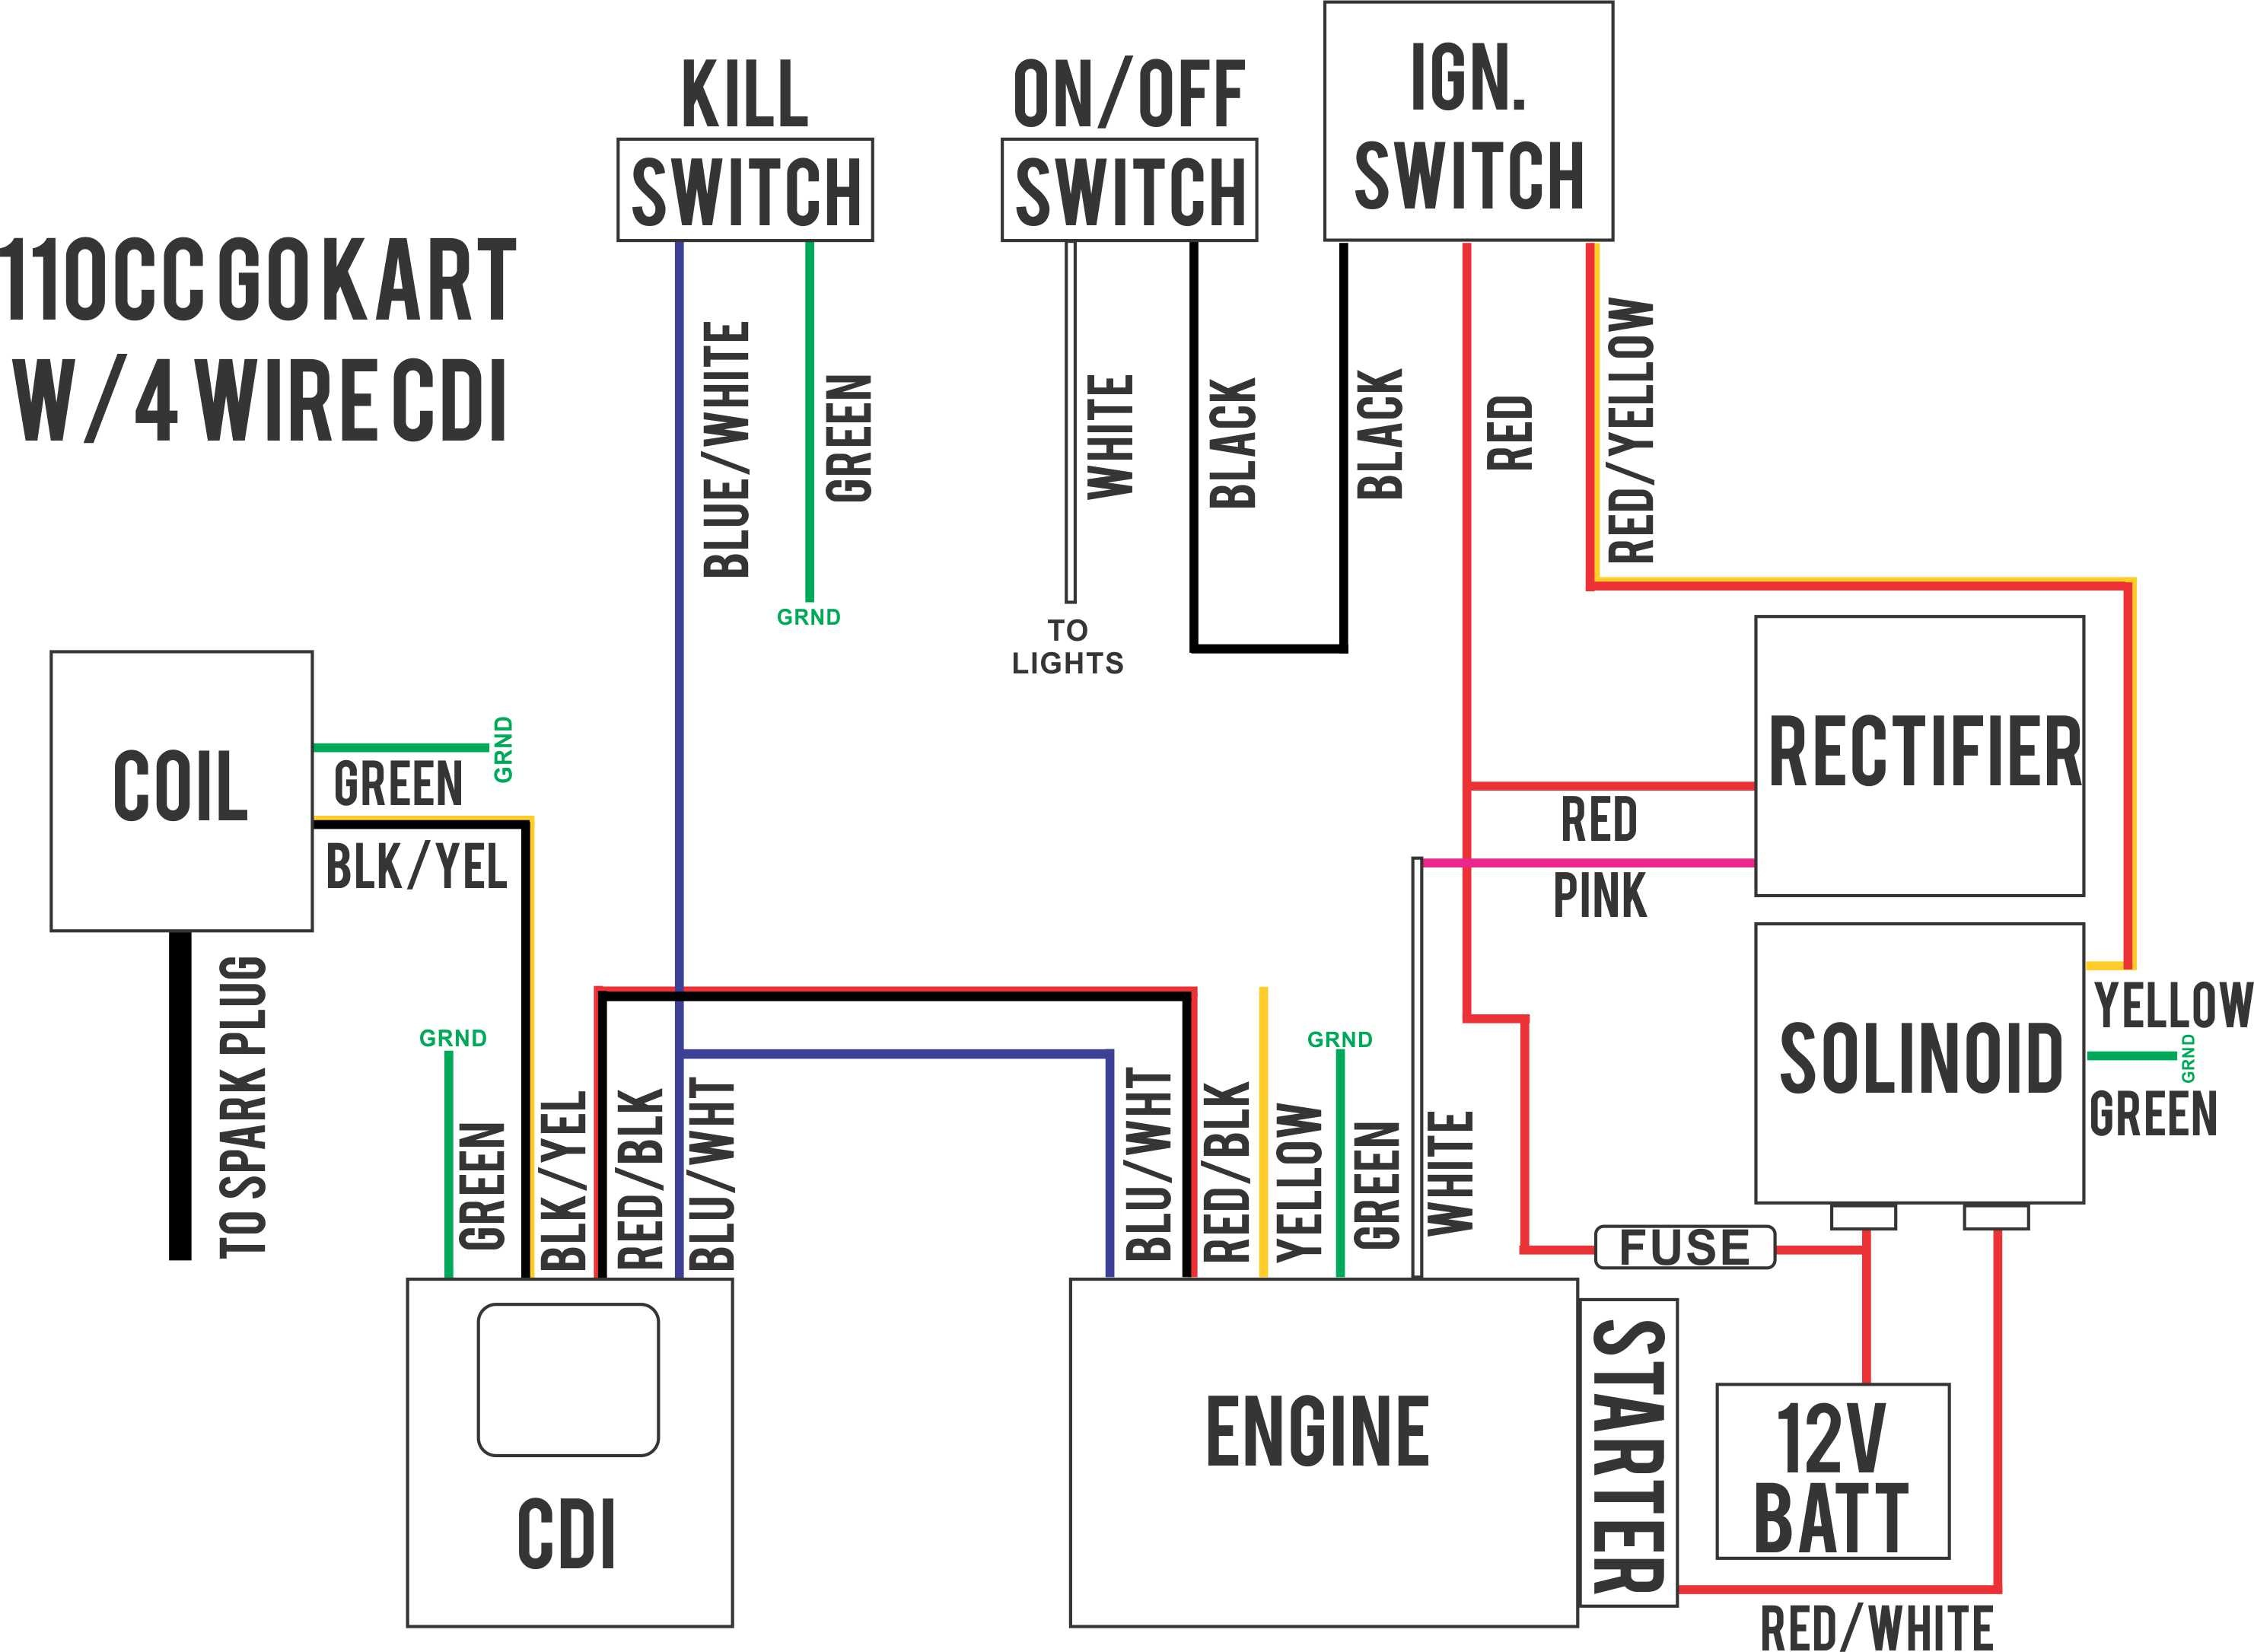 7 Wire Cdi Diagram | Wiring Diagram Wire Schematic on